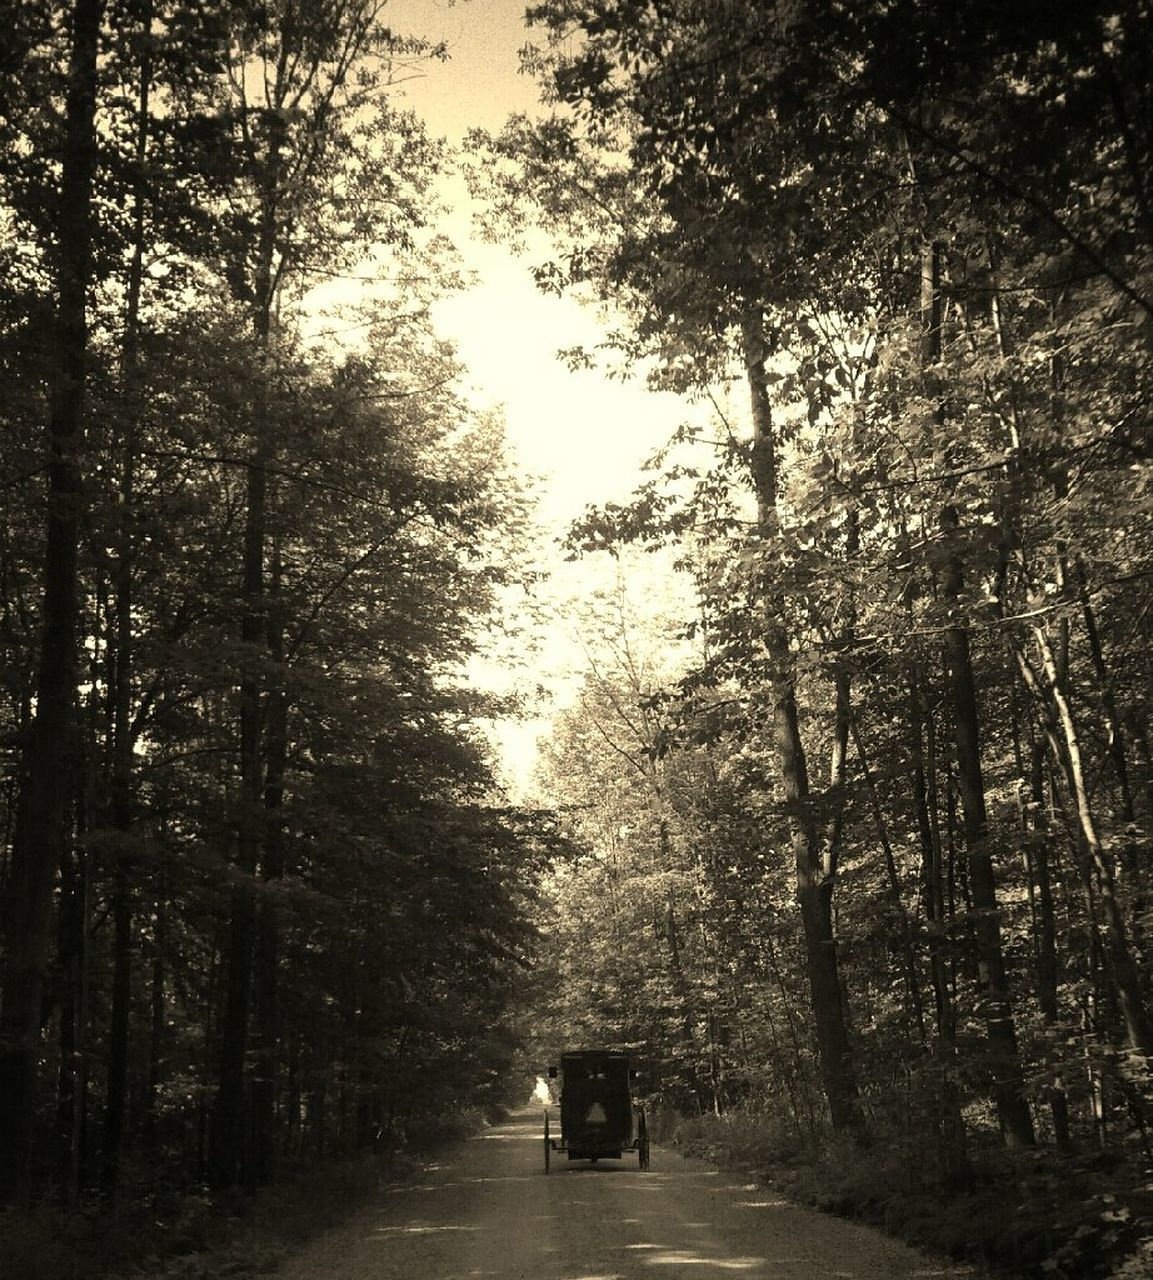 tree, transportation, forest, nature, road, the way forward, no people, day, outdoors, branch, beauty in nature